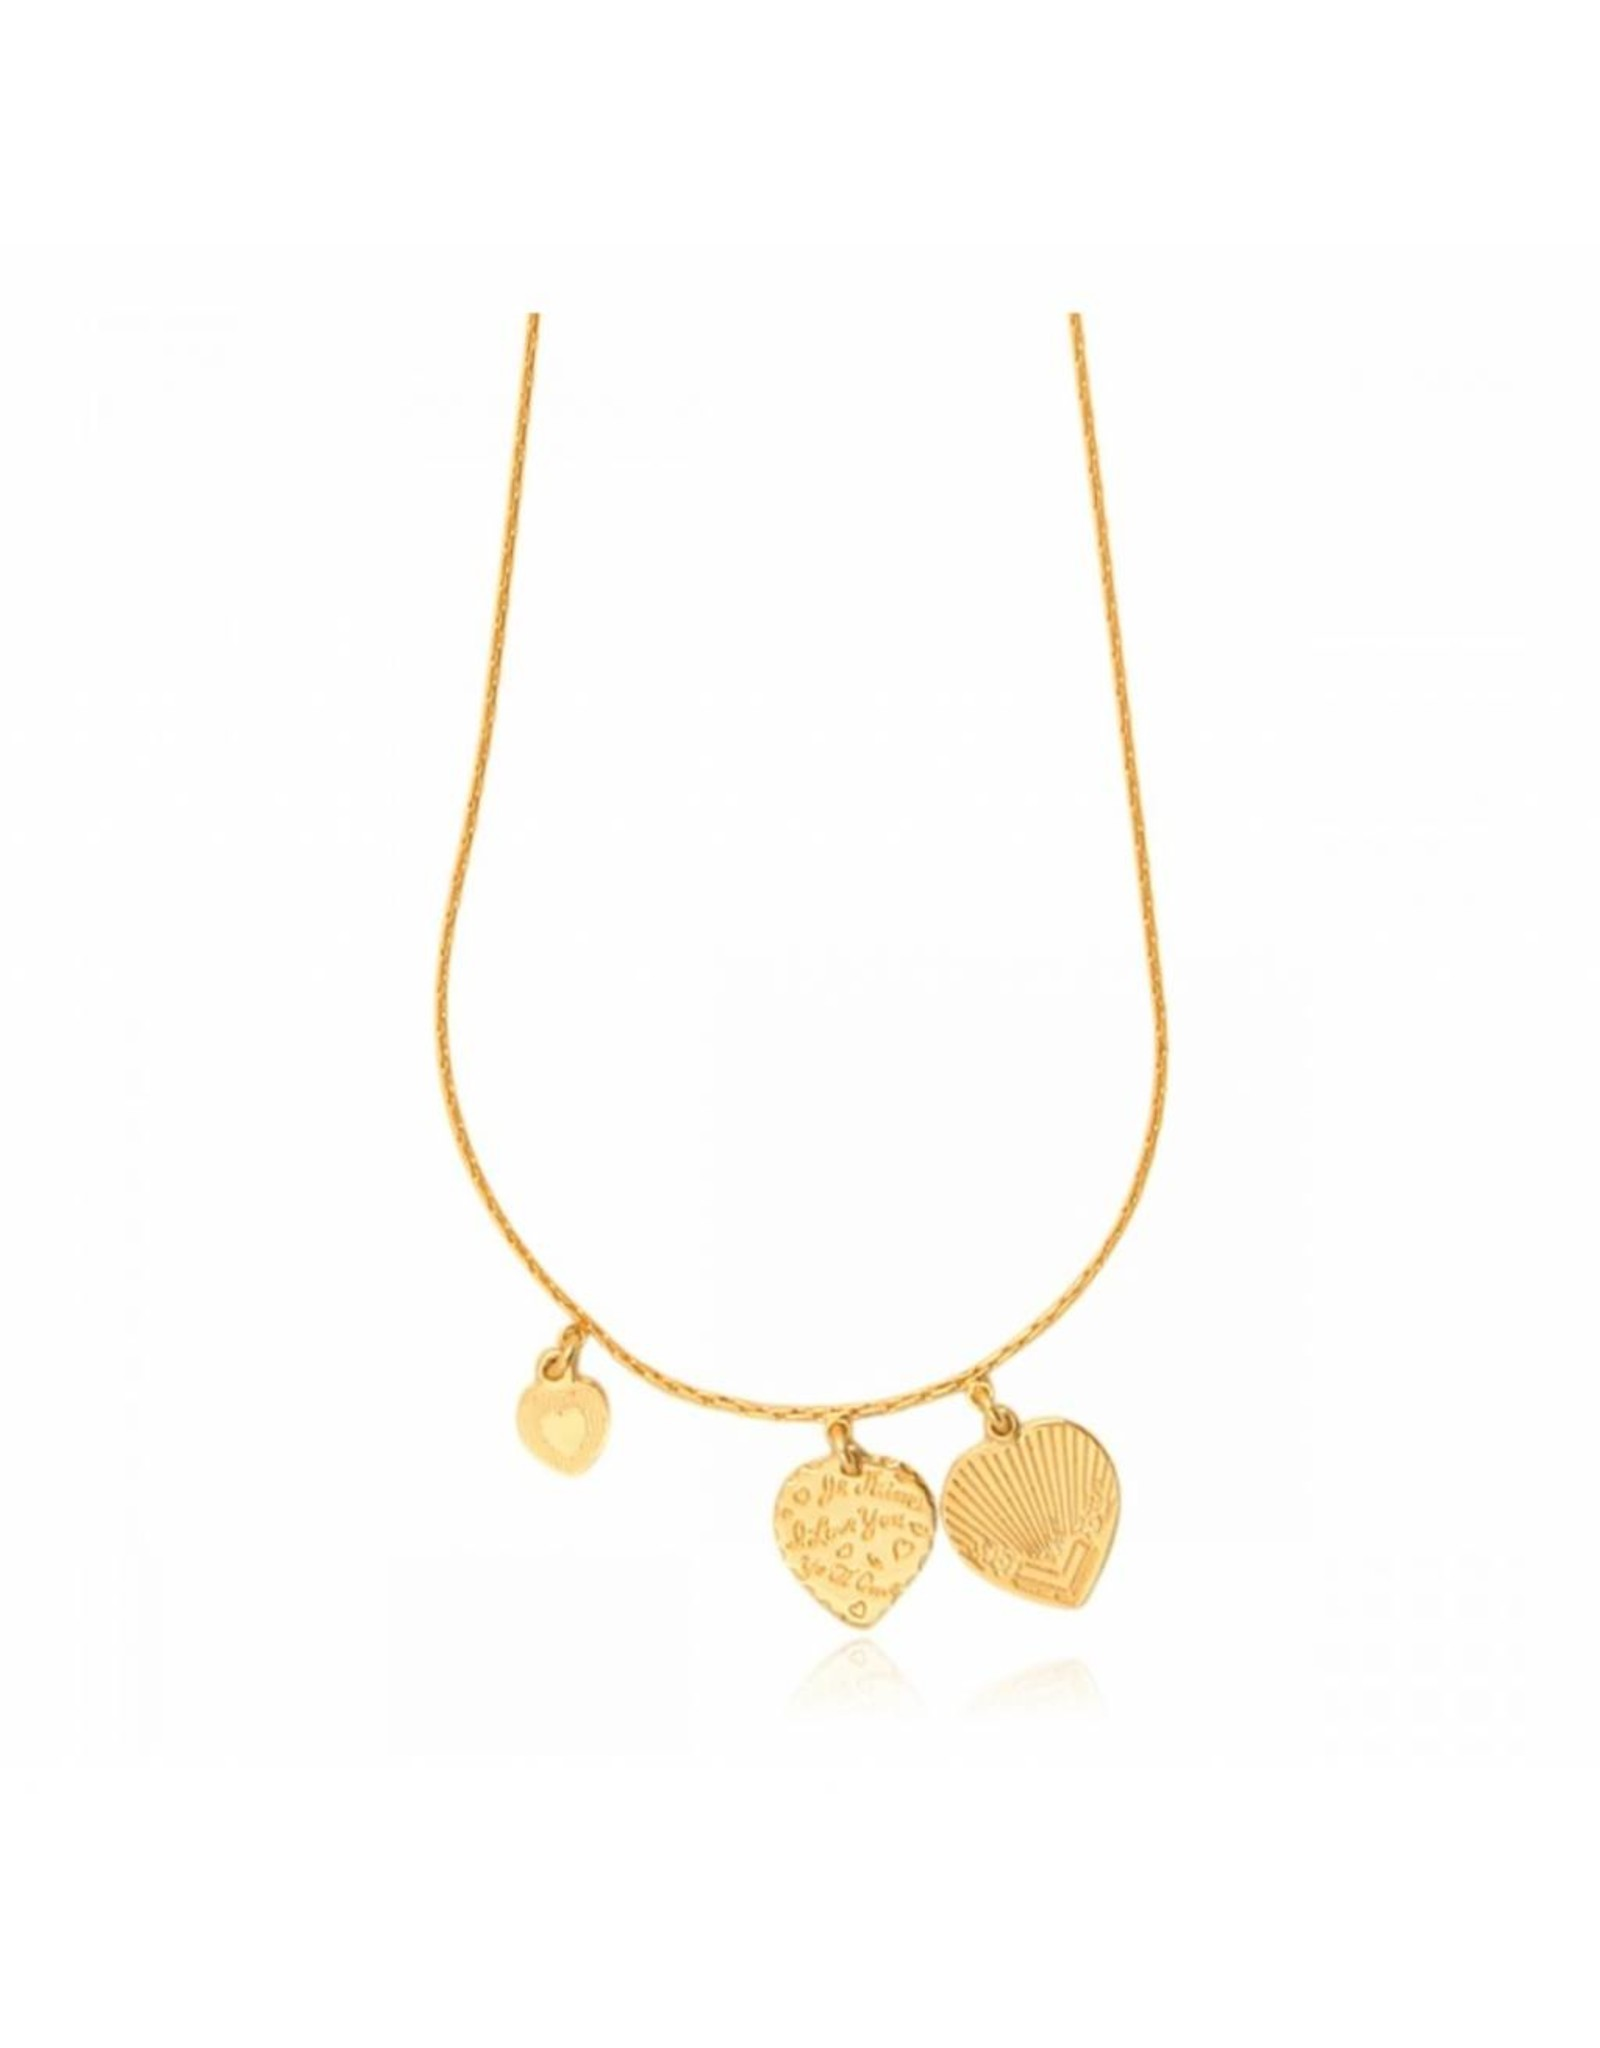 GAS Bijoux Necklace Hearts Gold PLated